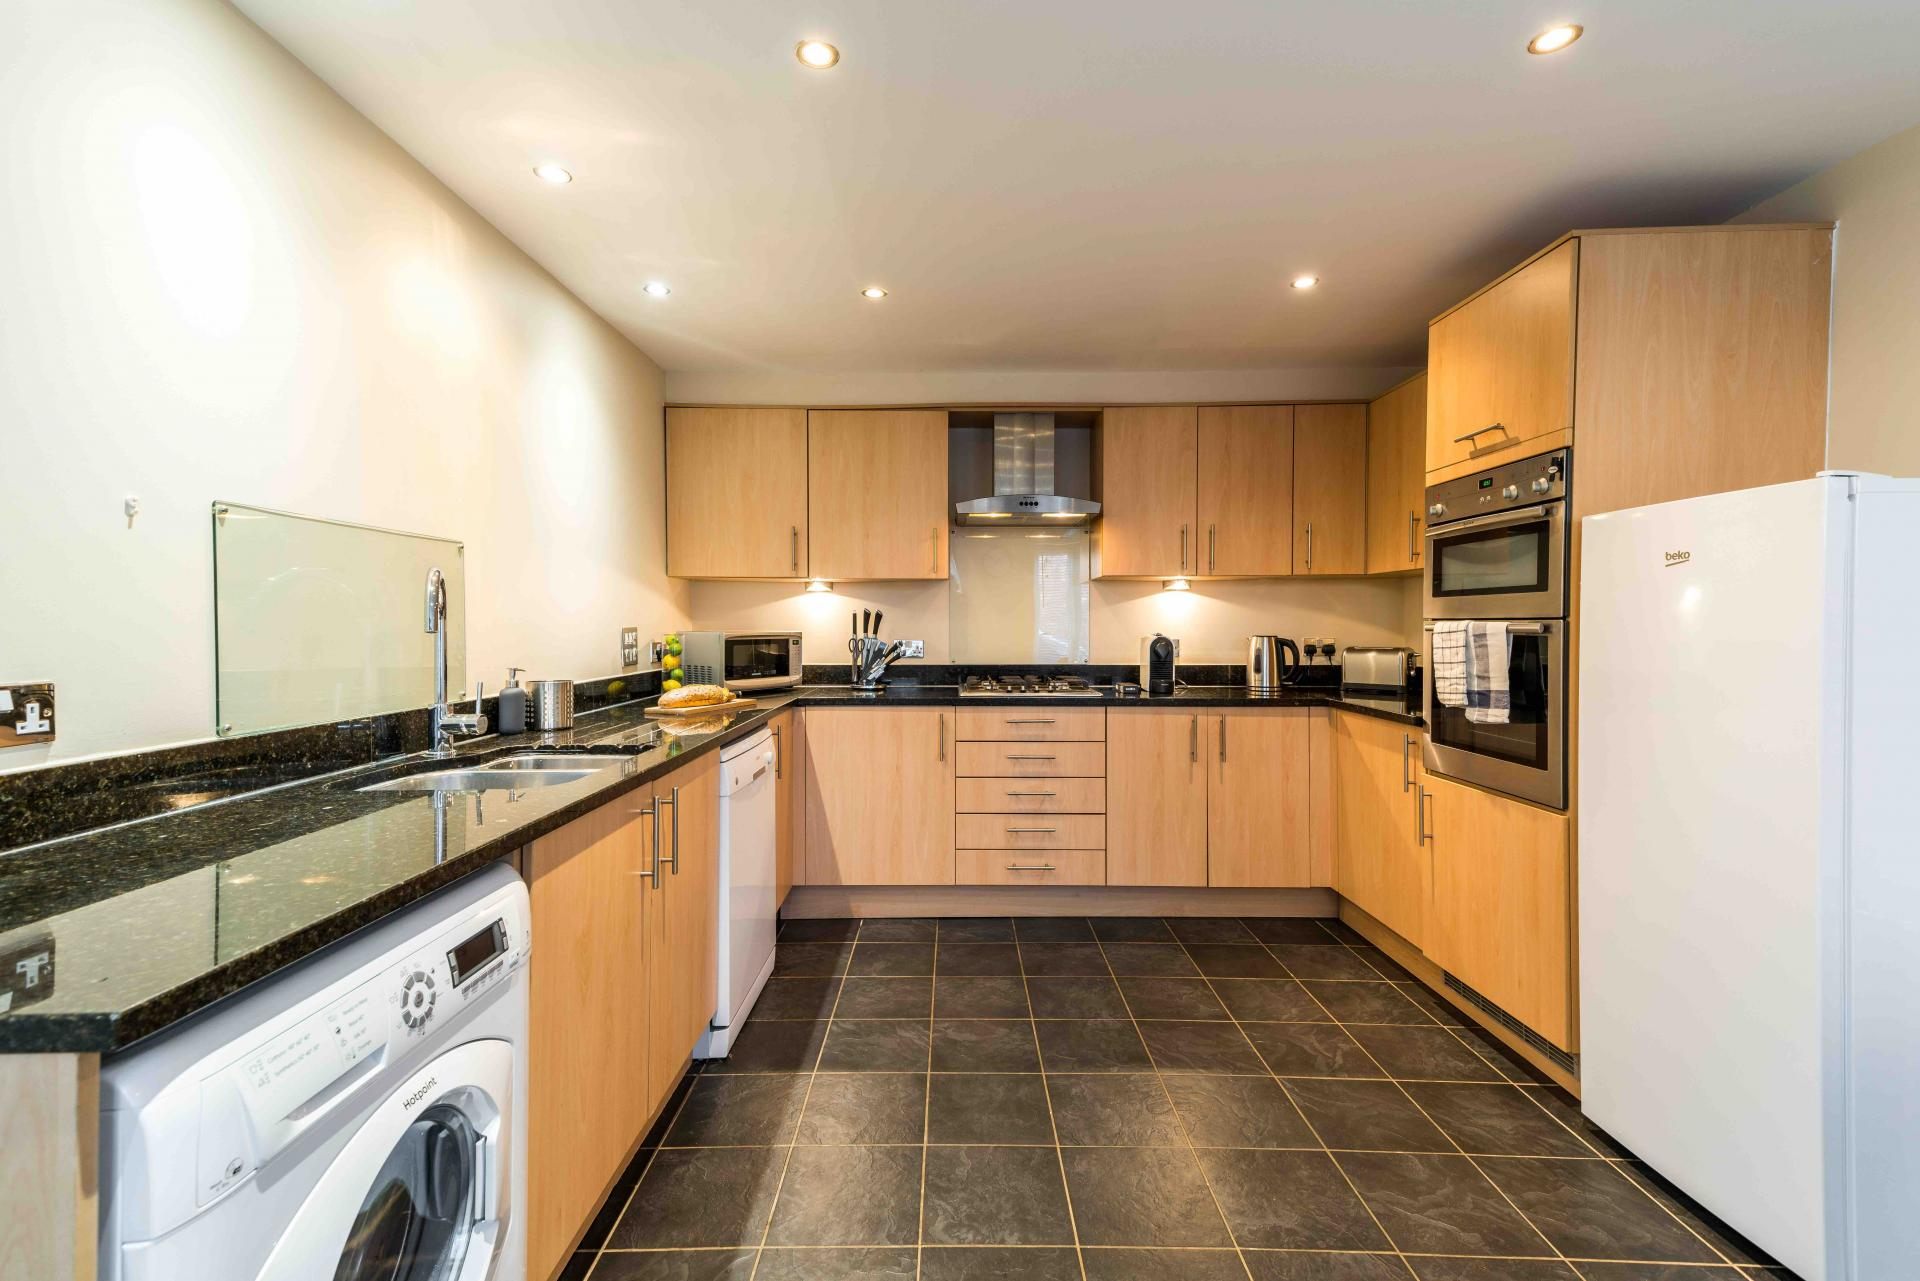 Kitchens at Wingfield Residence